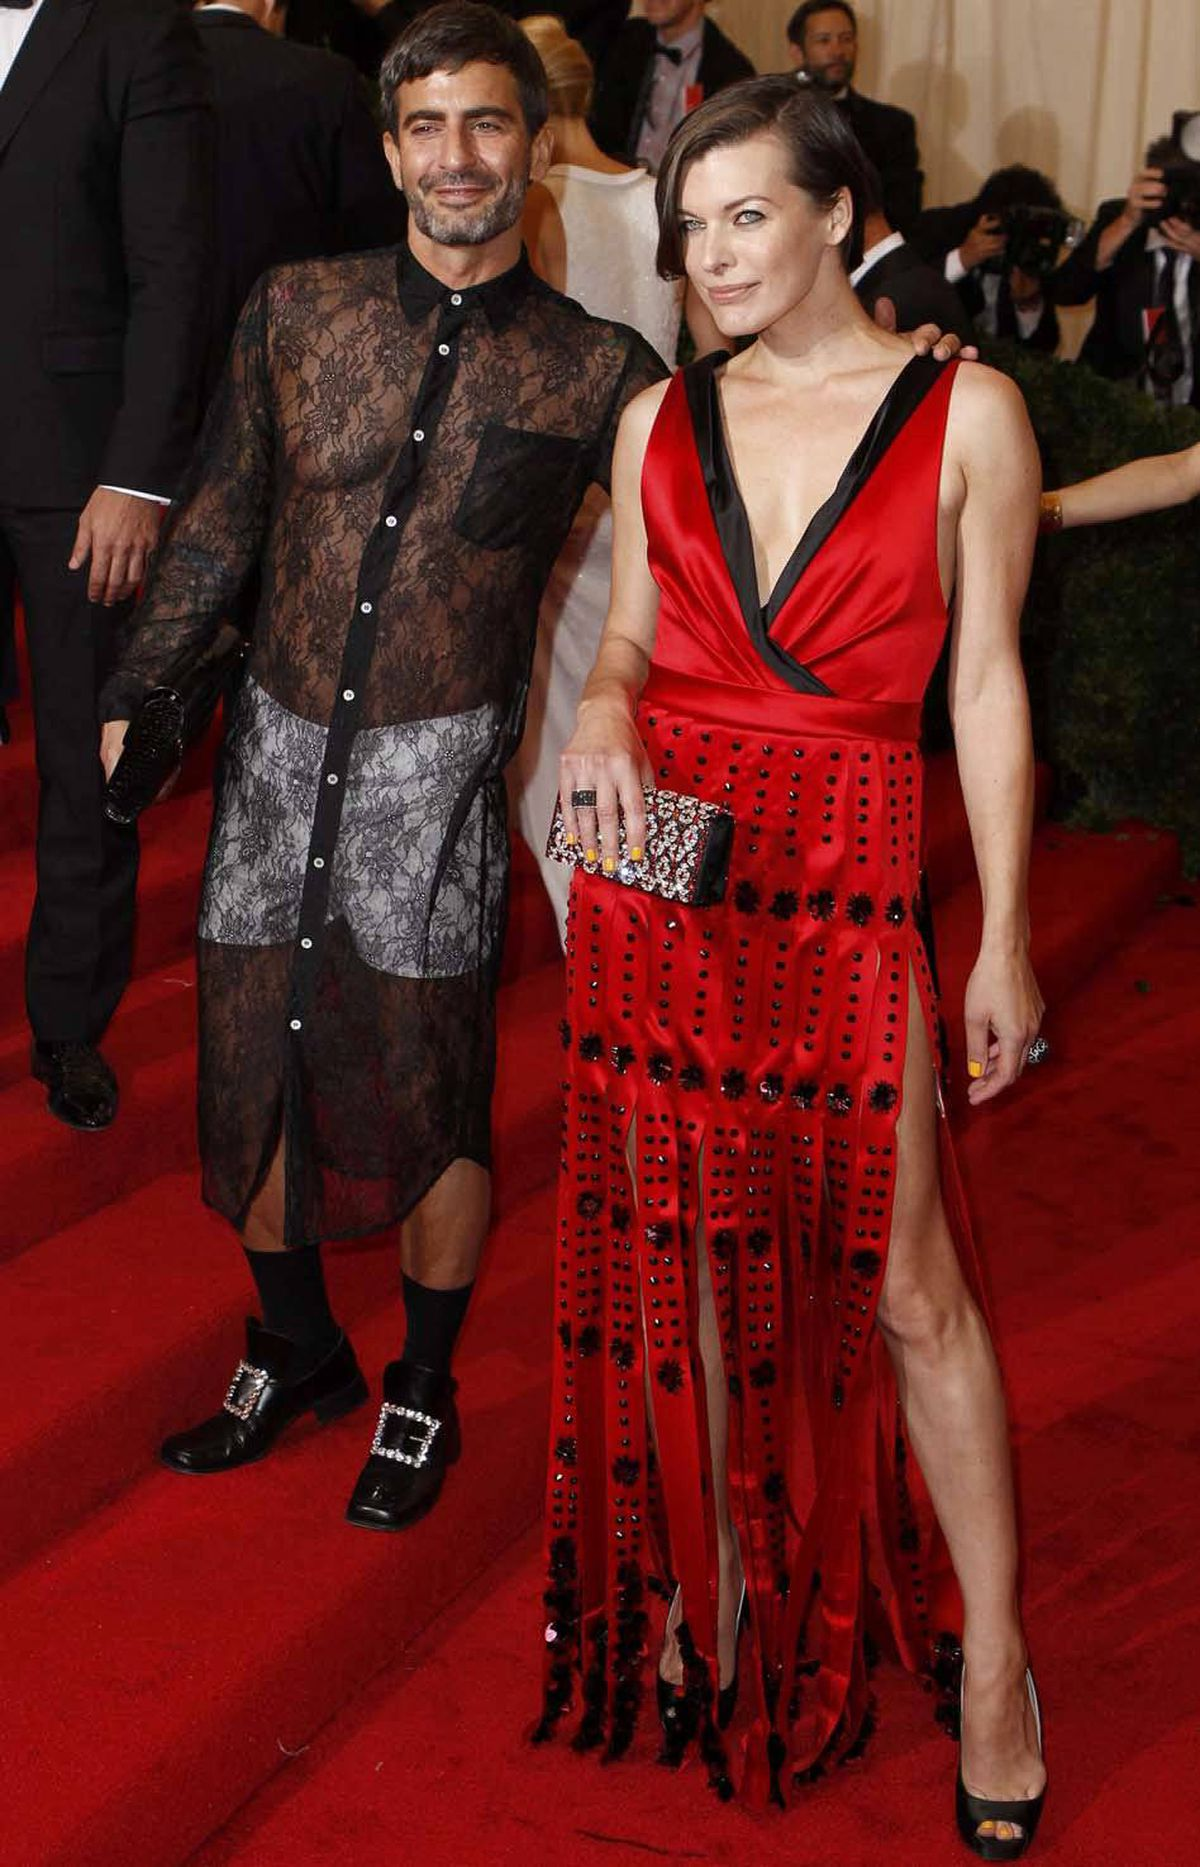 Designer Marc Jacobs (left, with actress Milla Jovovich) knocked it out of the park with underpants, leprechaun shoes and, of course, the requisite gauzy nightshirt.